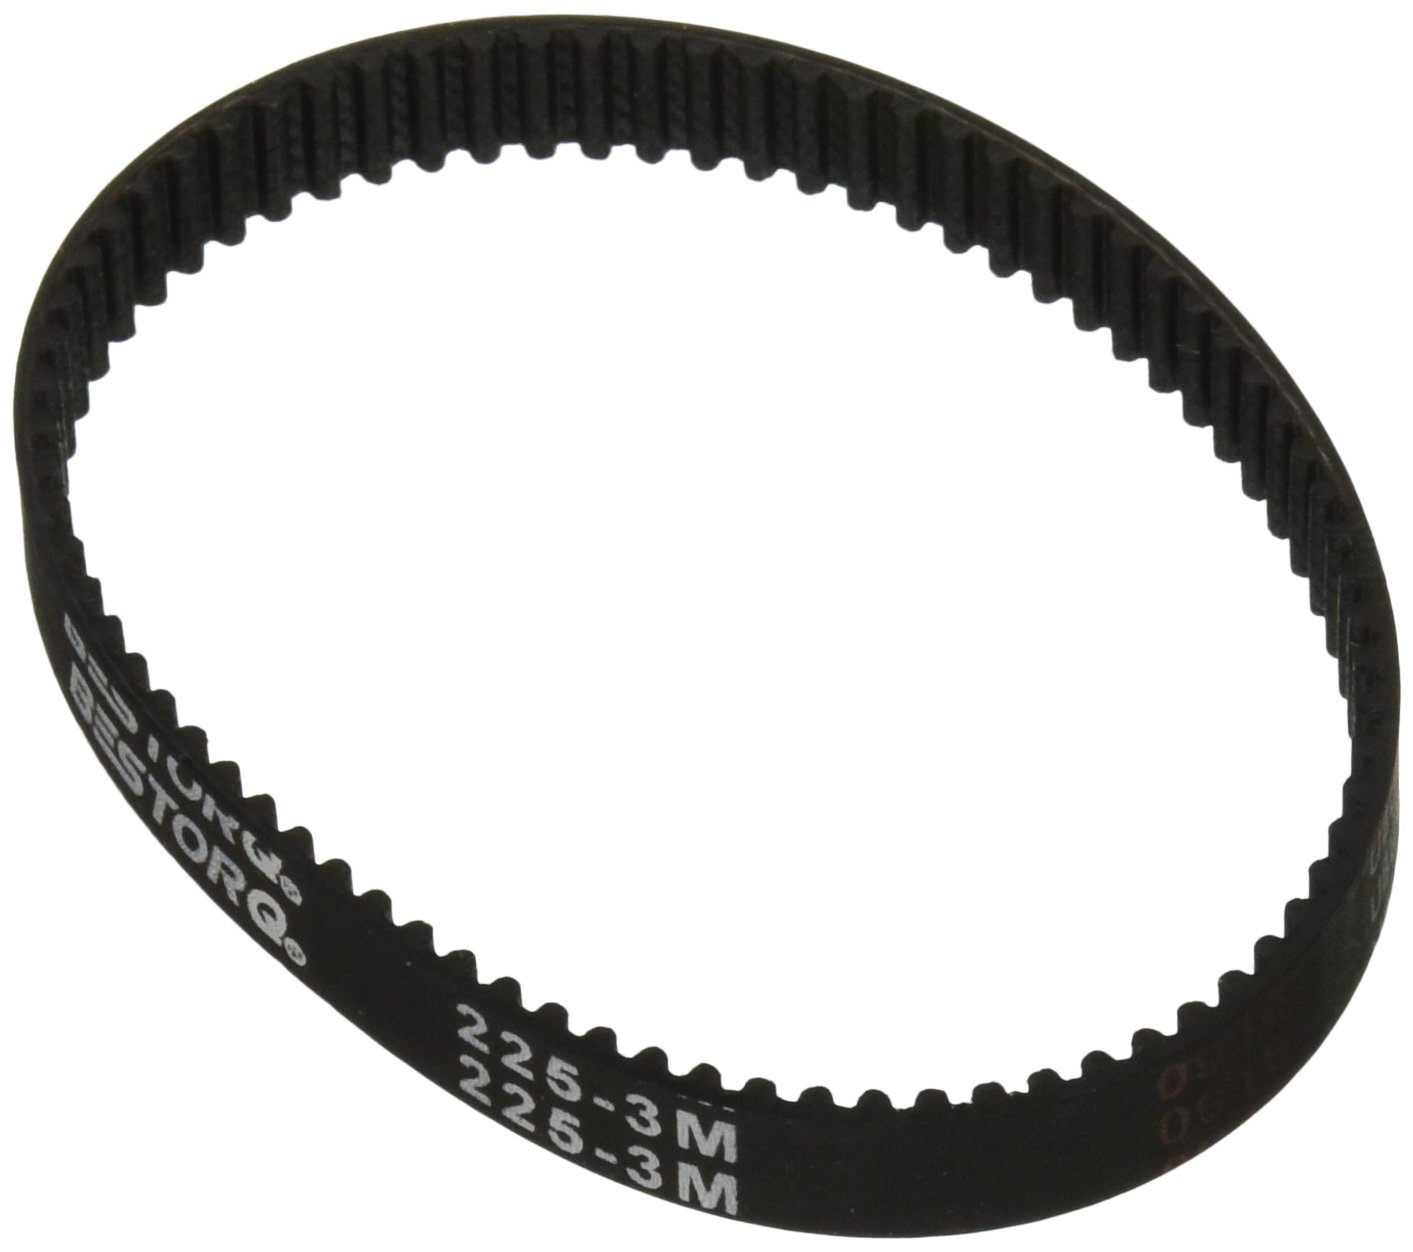 74 Teeth 9 mm Width Rubber 222 mm Outside Circumference BESTORQ 222-3M-9 3M Timing Belt 3 mm Pitch